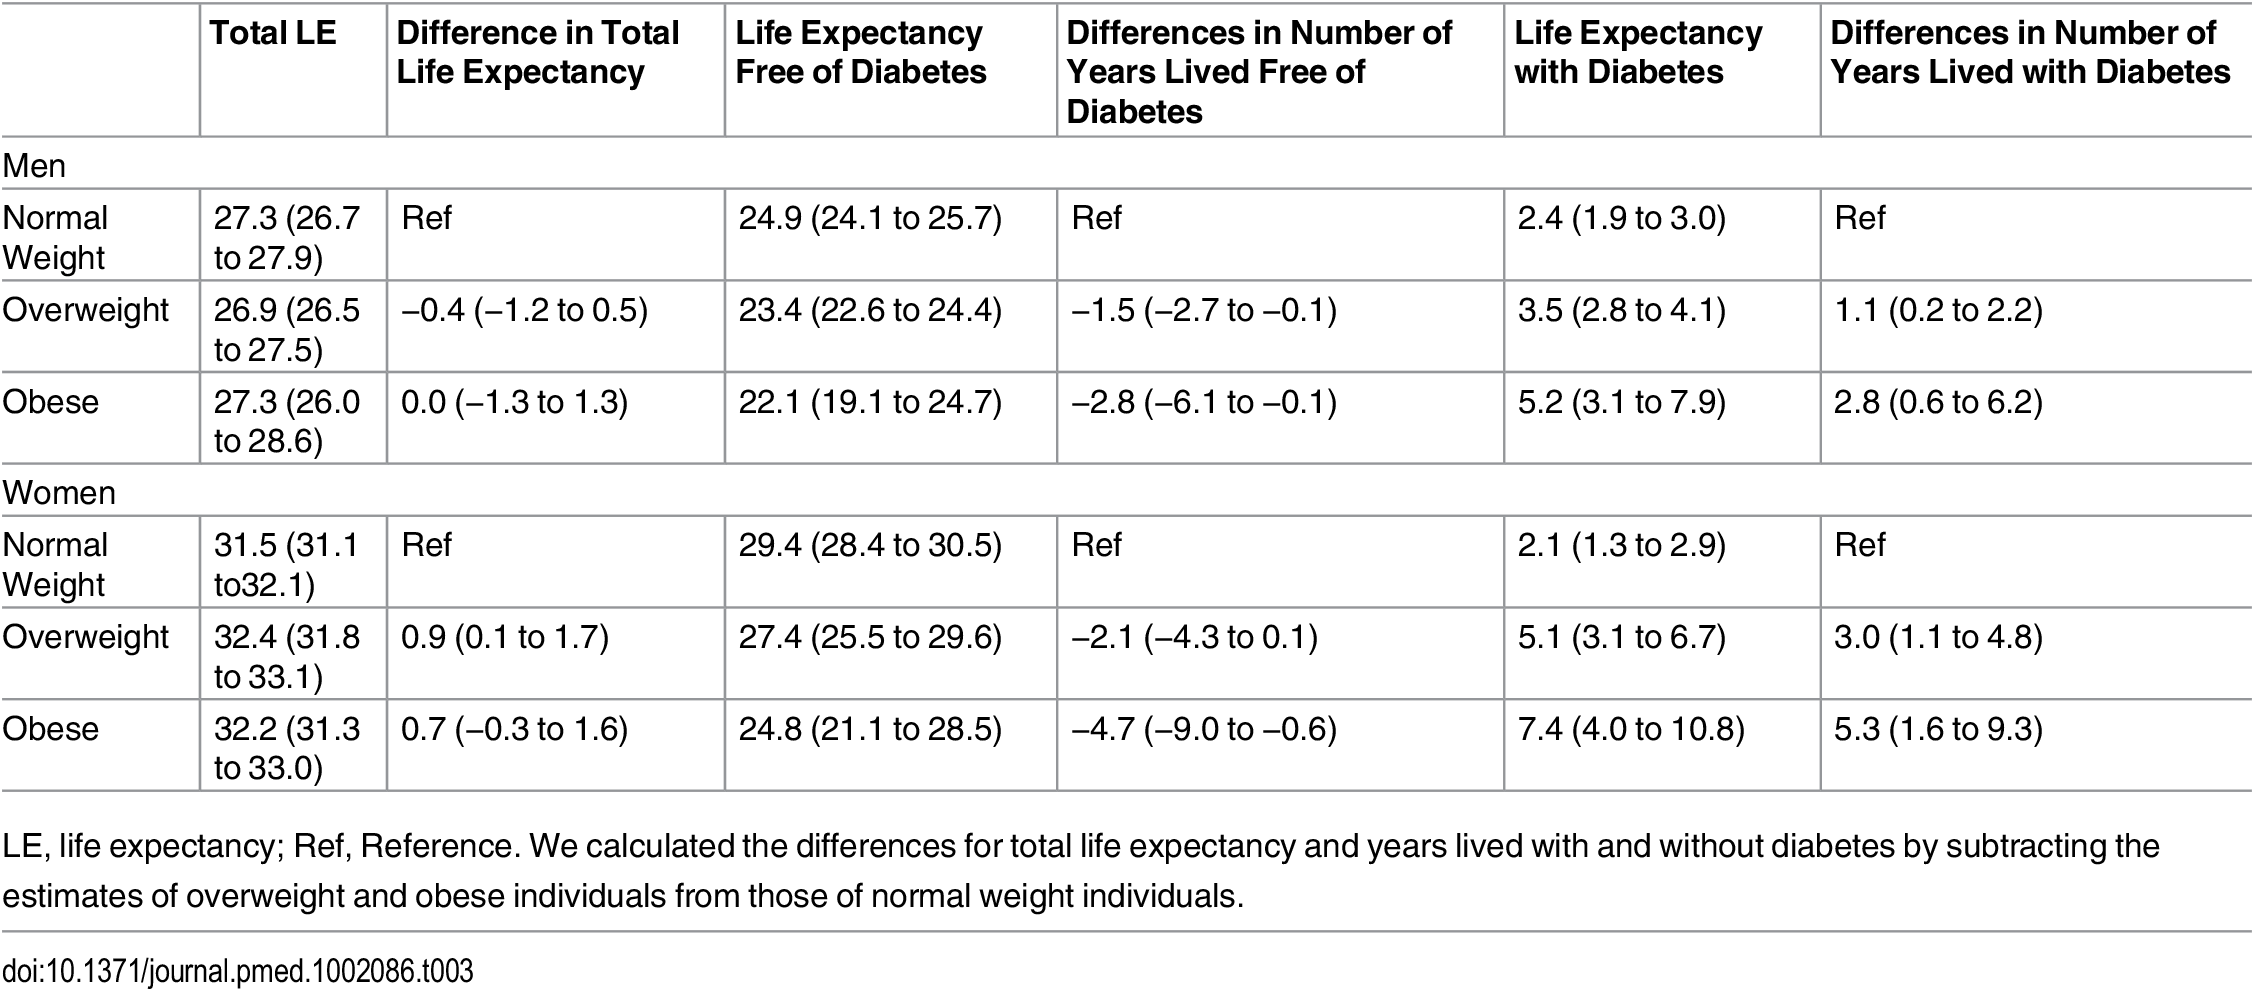 Differences in life expectancy, in years, at age 55 y for normal weight, overweight, and obesity in men and women.